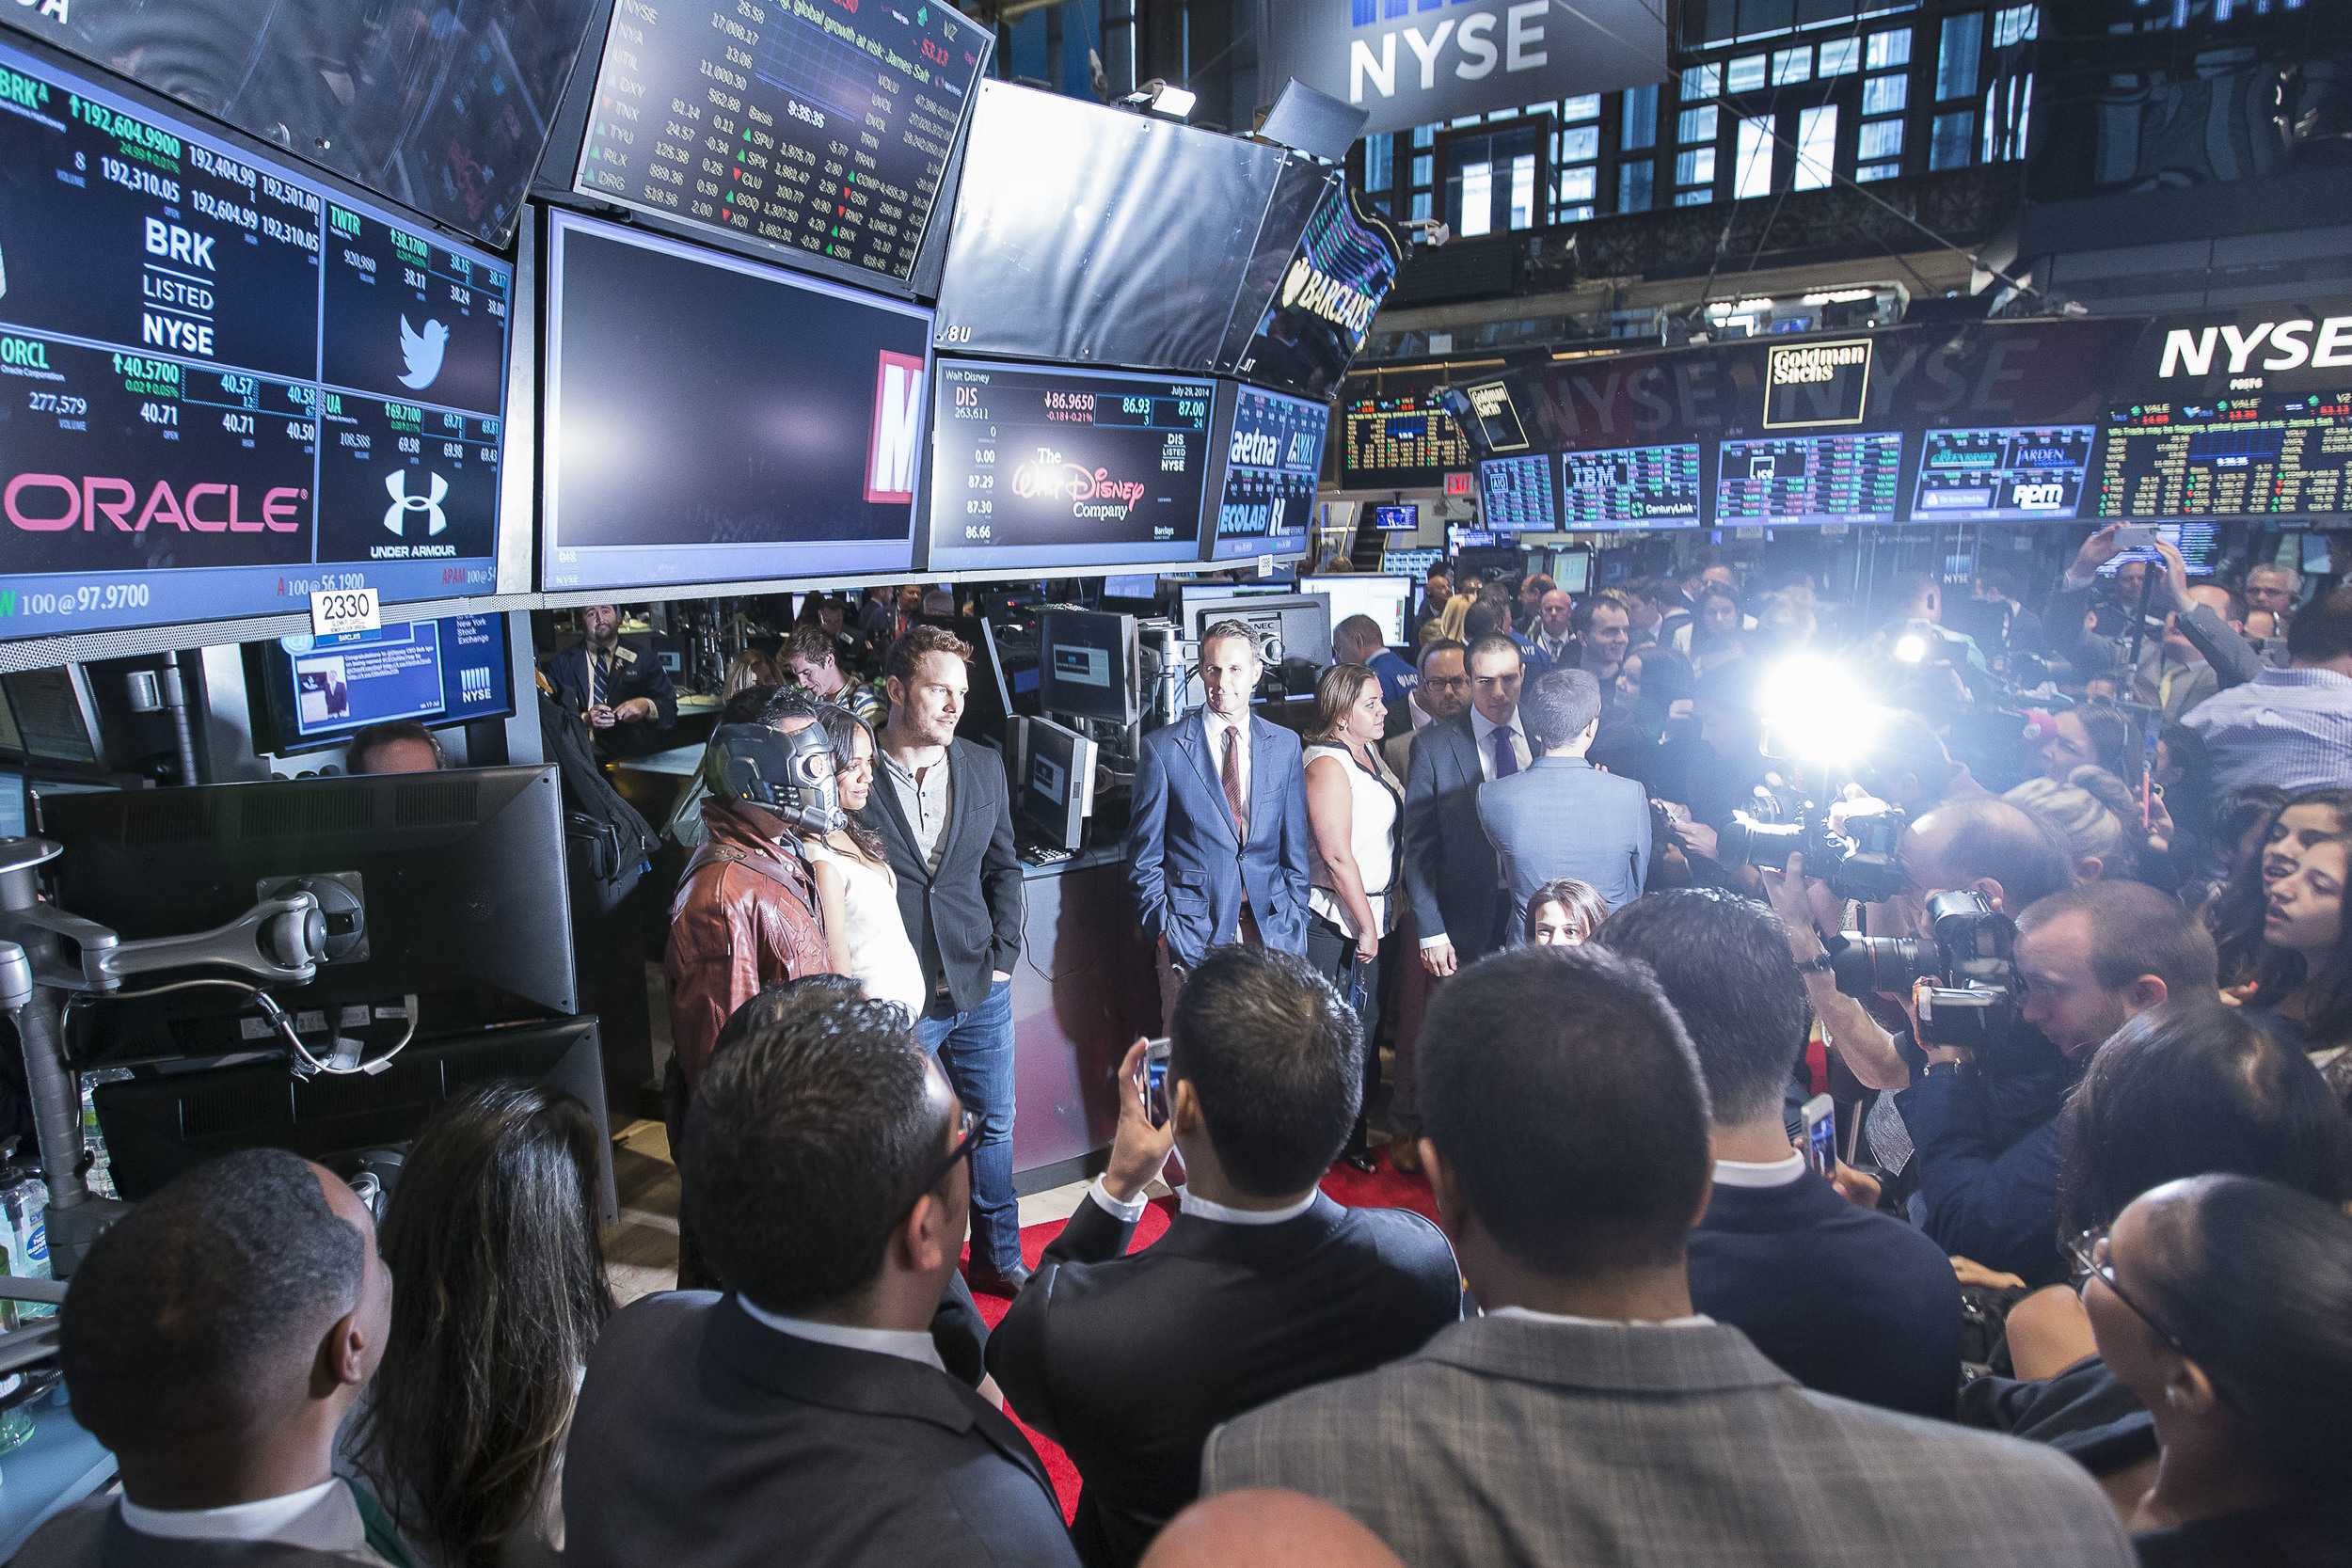 Chris Pratt and Zoe Saldana are swarmed by photographers on the trading floor as they promote Marvel's Guardians of the Galaxy movie.